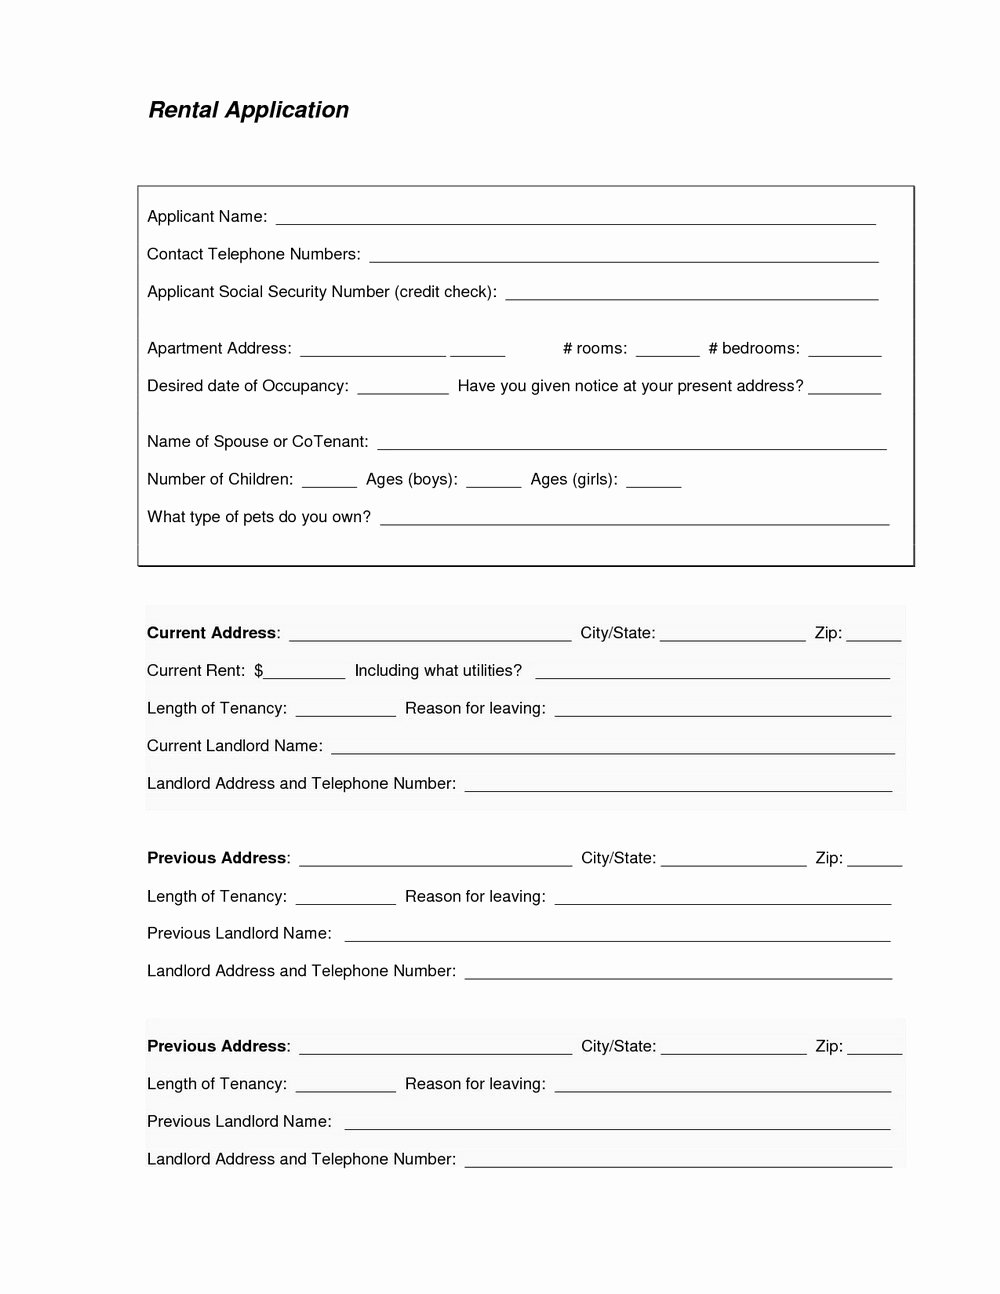 Uber Background Check Consent form Download